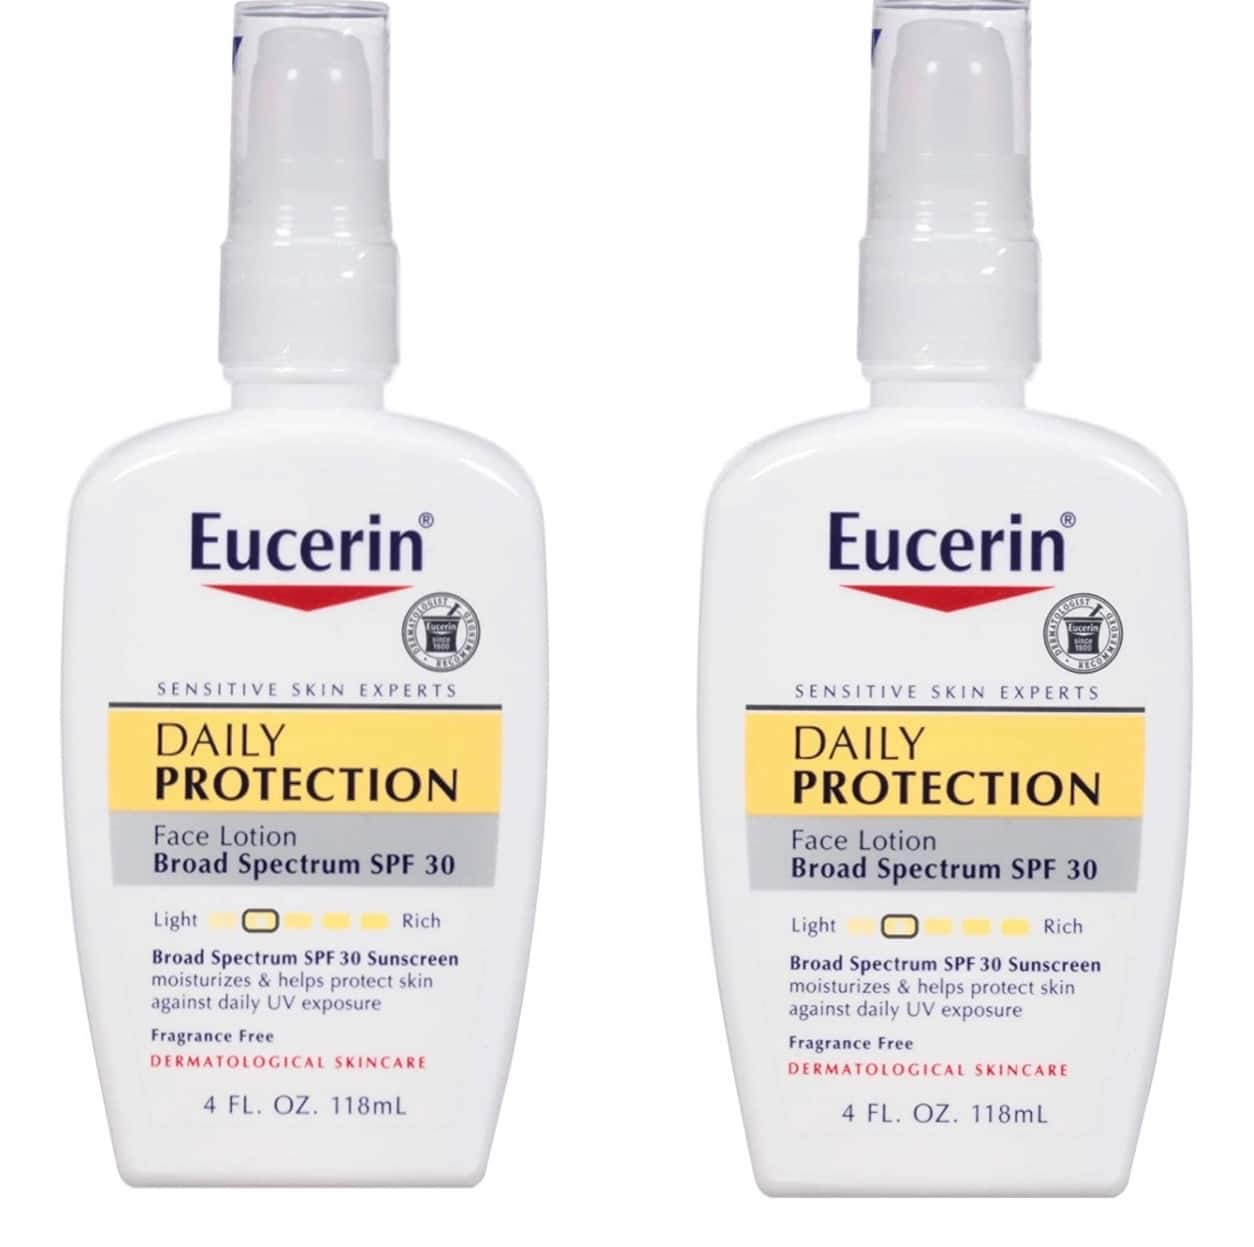 4-Oz Eucerin Daily Protection Face Lotion w/ Spectrum SPF 30 (sensitive/dry skin) 2 for $10.61 ($5.30 each) w/ S&S + Free Shipping w/ Prime or on $25+